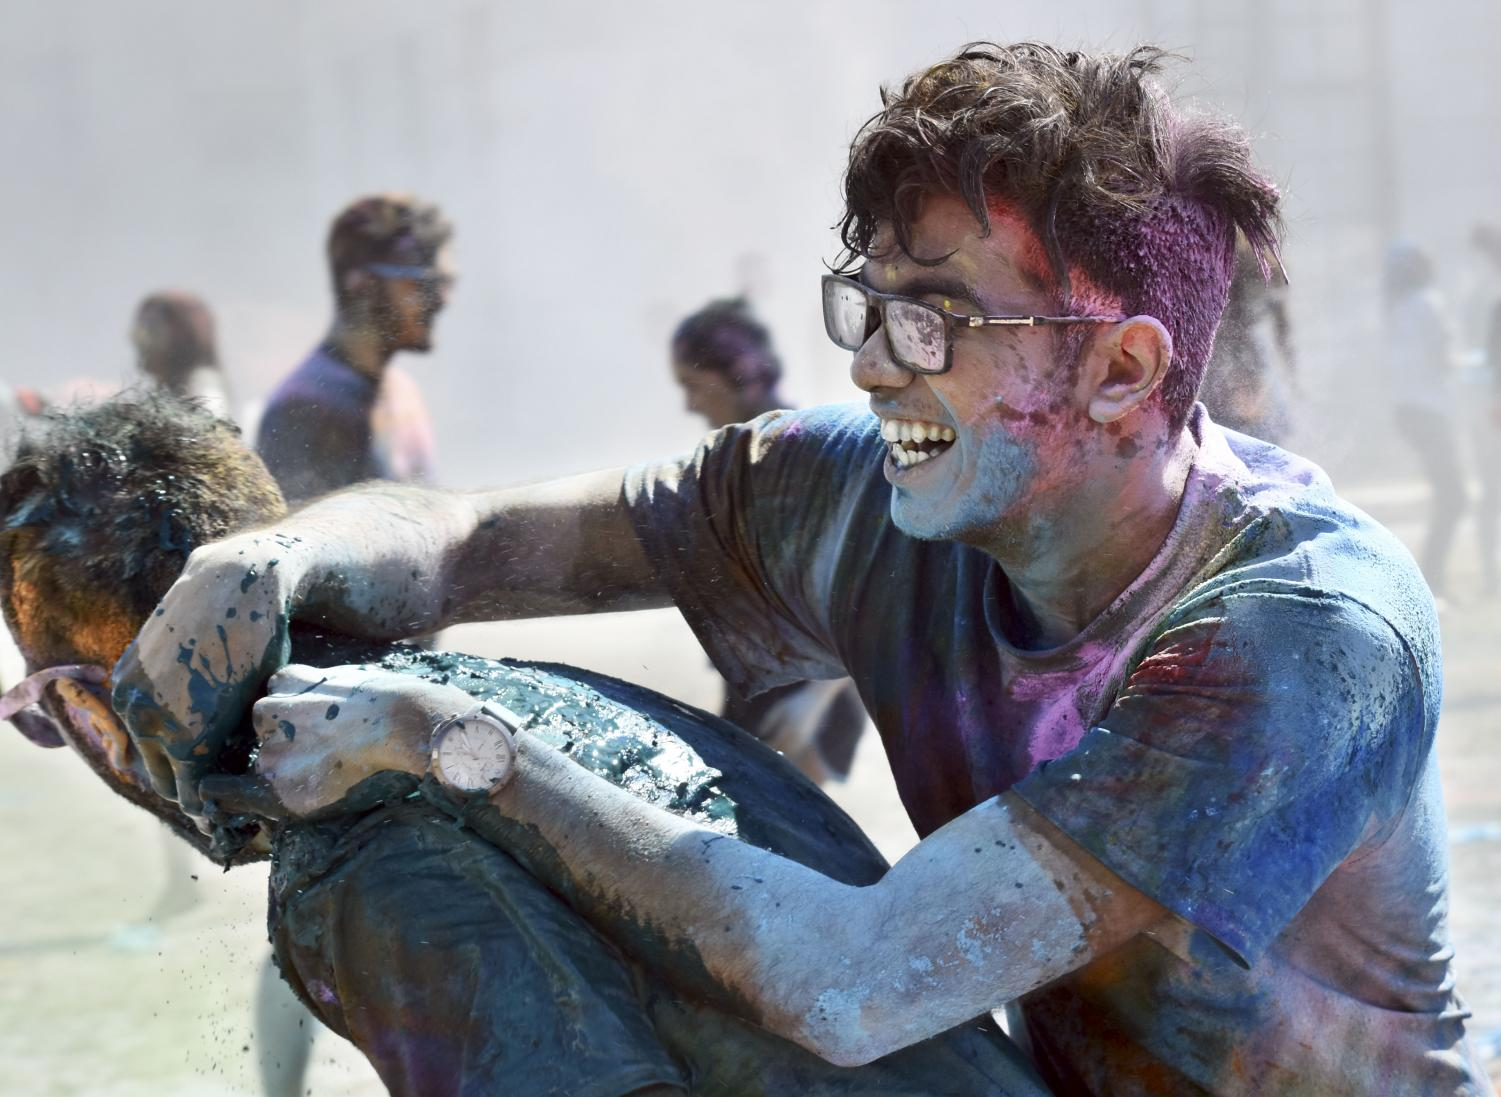 Two participants of Holi enjoy the warm day while covered in pigments of color.